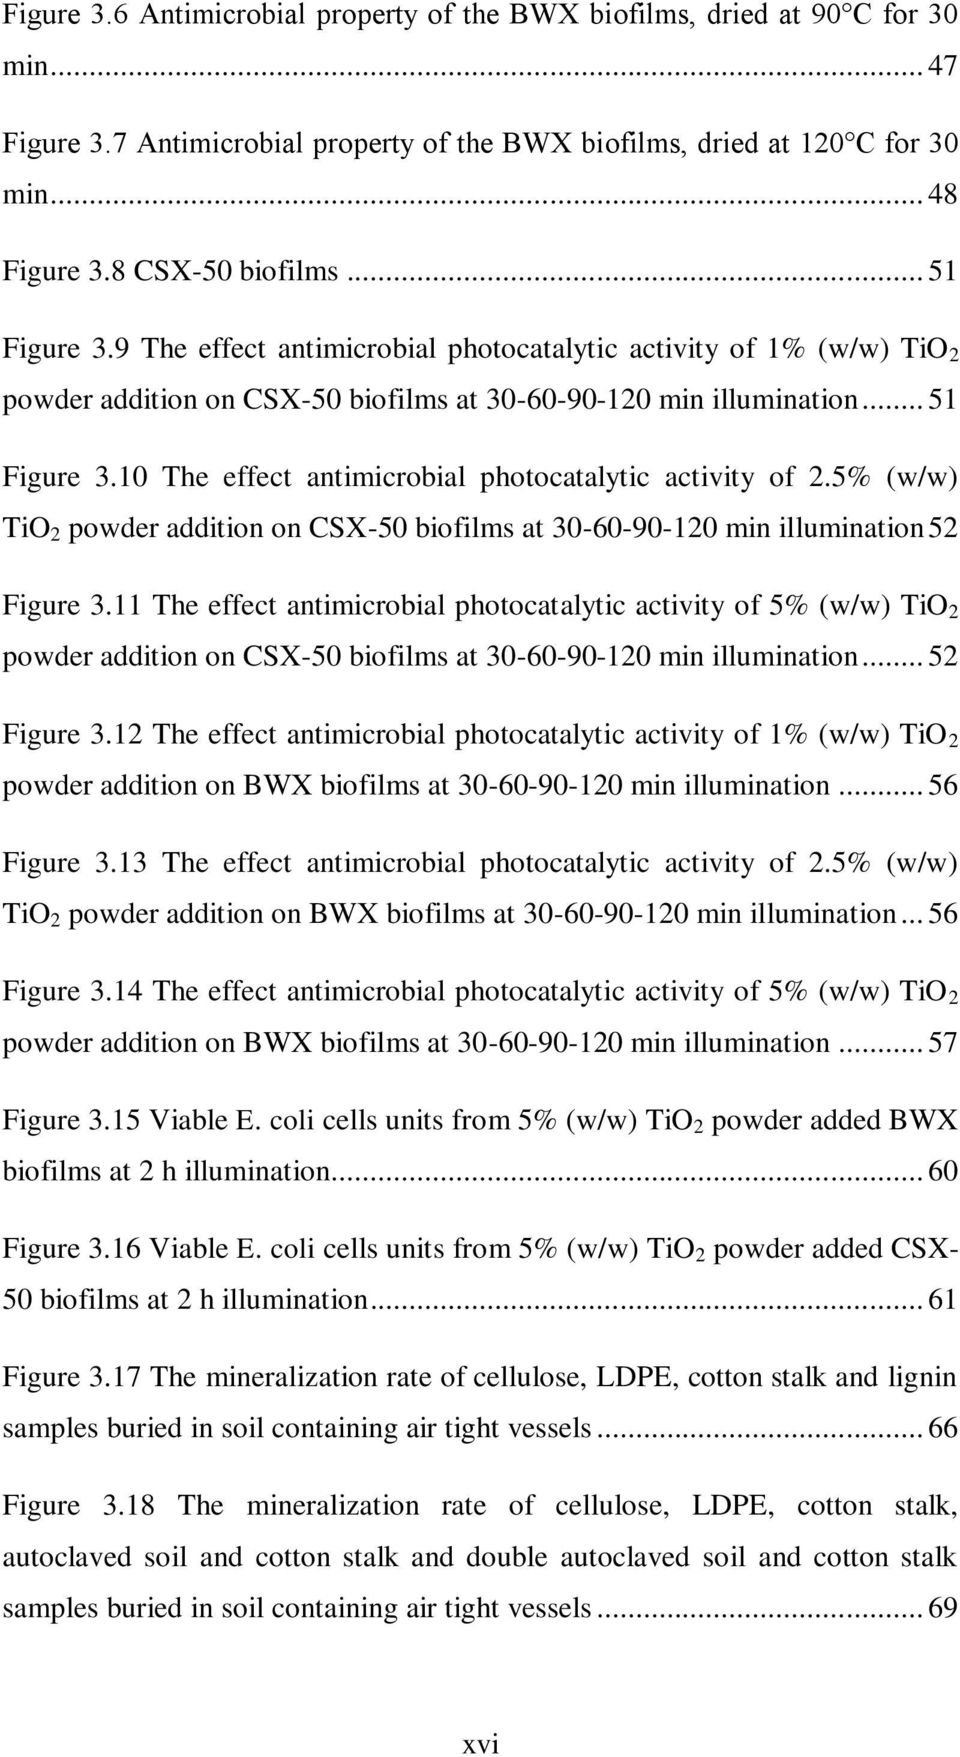 5% (w/w) TiO 2 powder addition on CSX-50 biofilms at 30-60-90-120 min illumination 52 Figure 3.